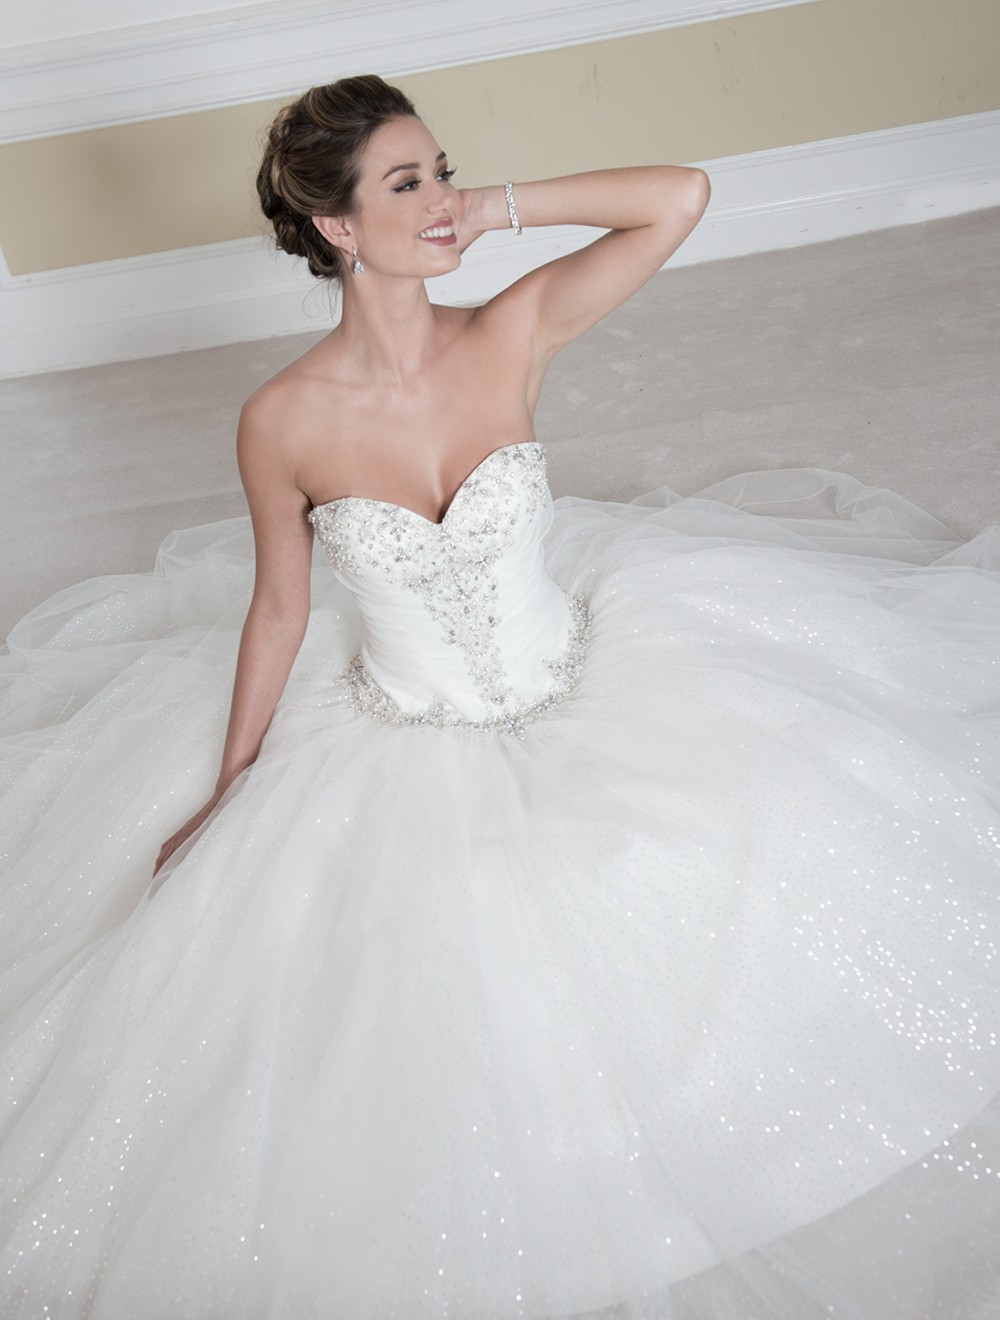 Venus Bridal : Gracefully Wear Our Beautiful Ball Gown Wedding Dresses